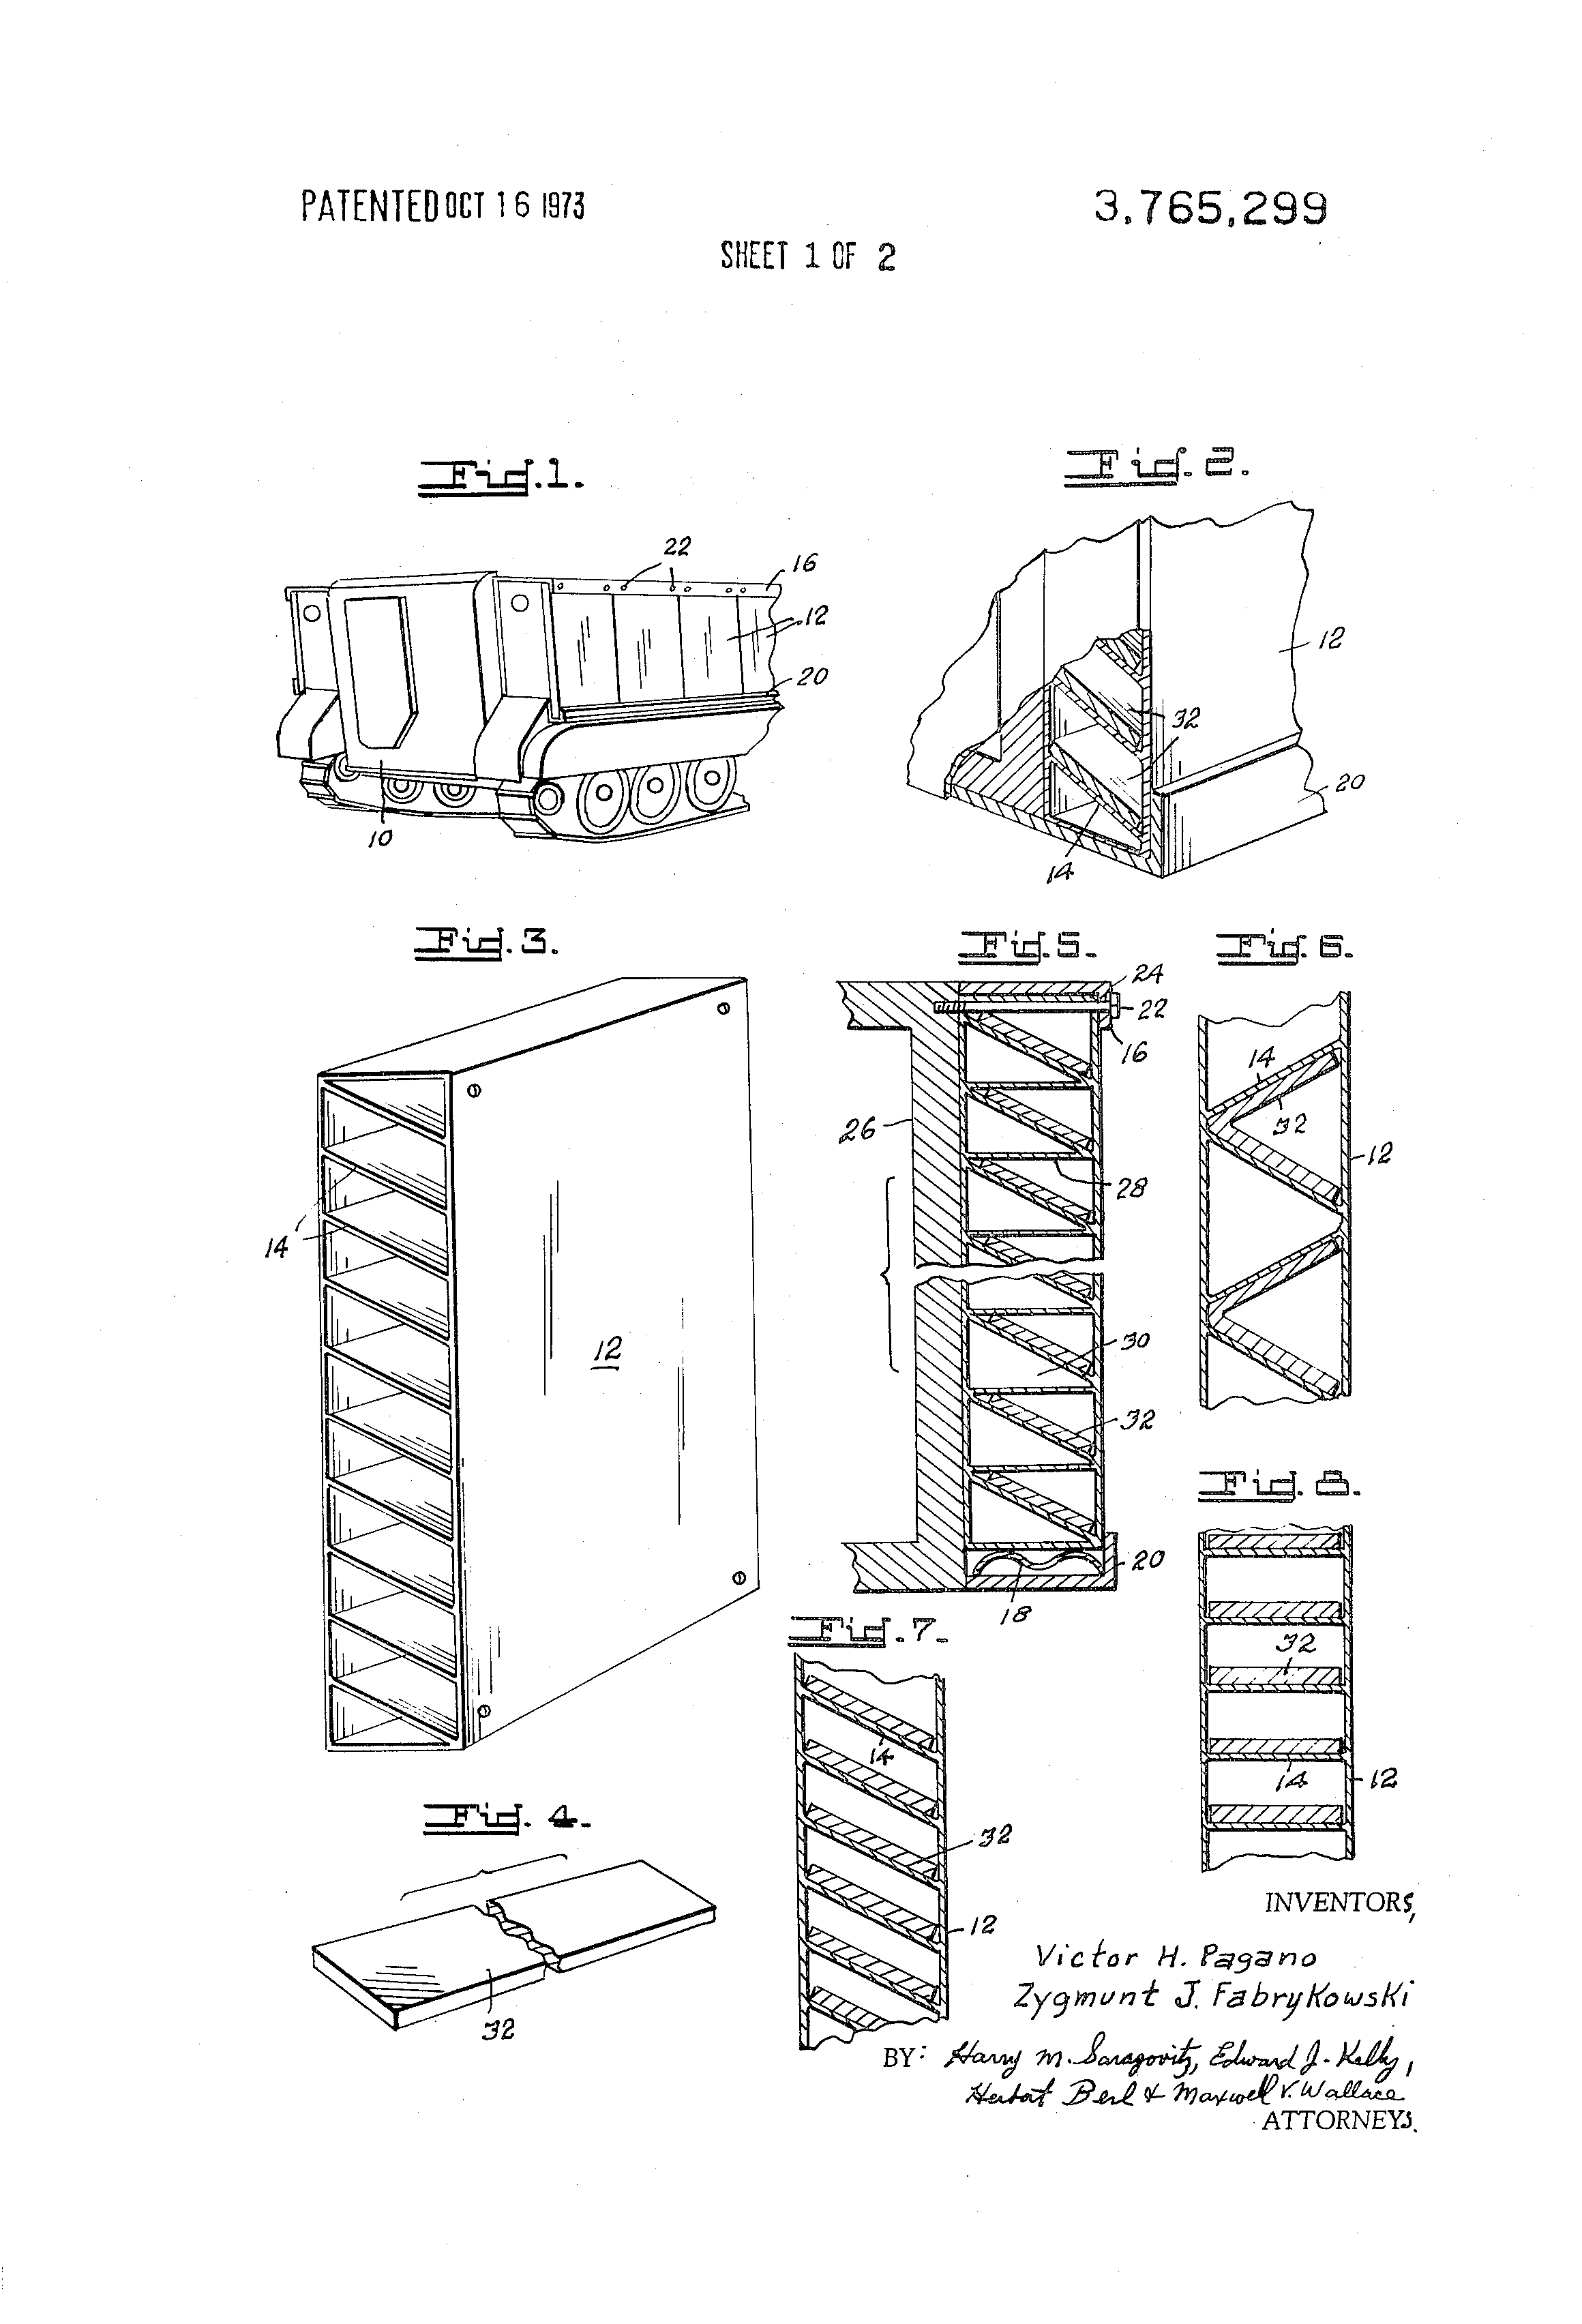 US3765299-drawings-page-2.png